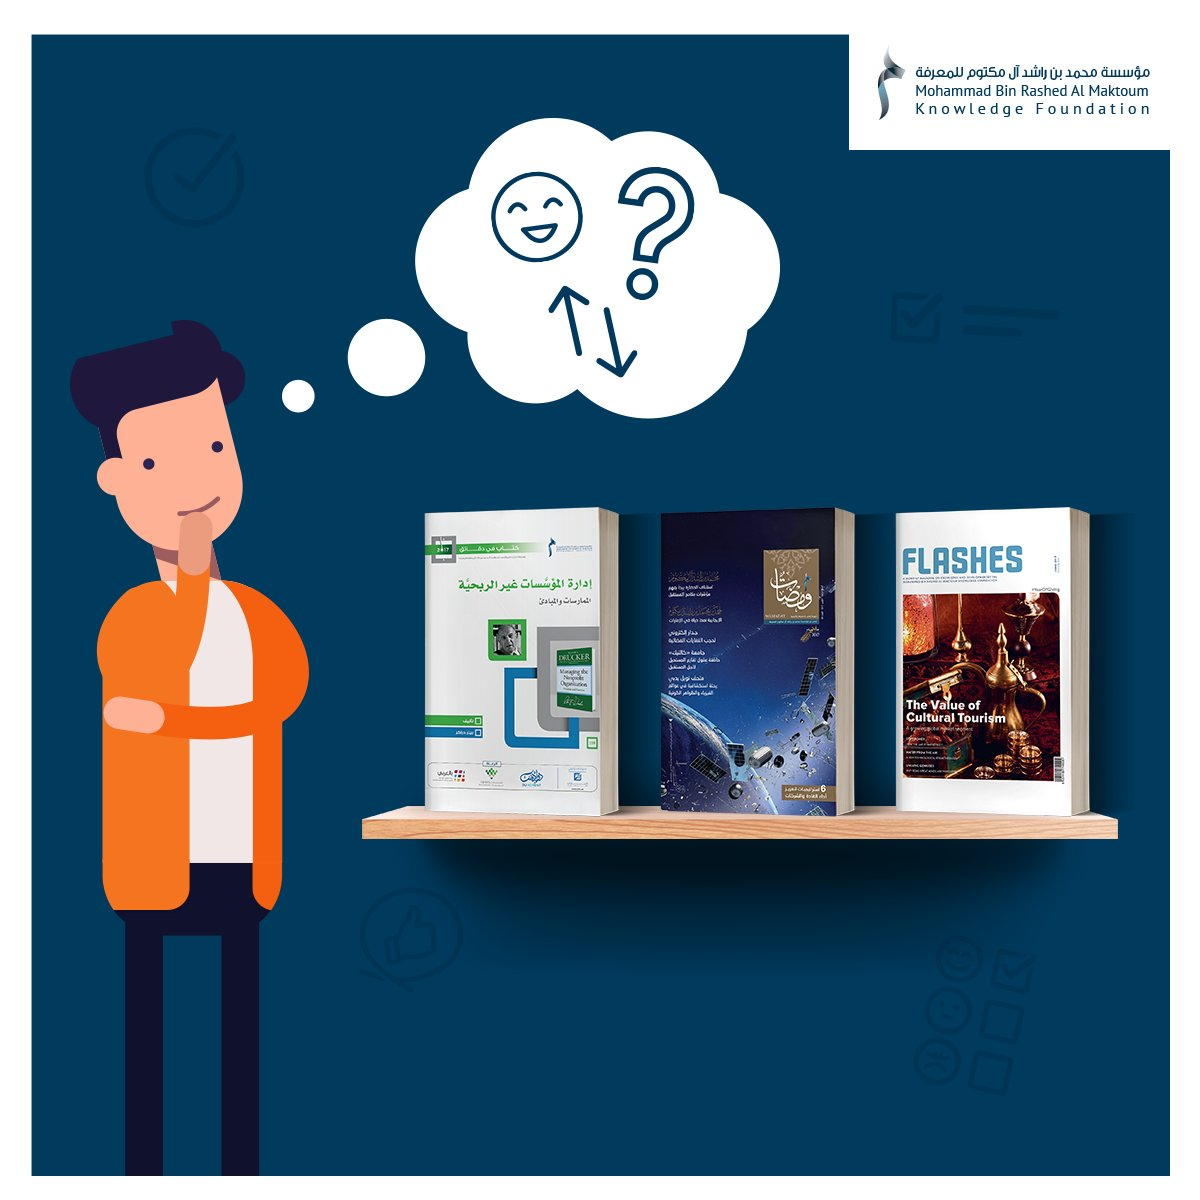 Your role in improving #MBRF's publications is vital. Support us &amp; participate in this survey:  http:// bit.ly/2to2rQZ  &nbsp;  <br>http://pic.twitter.com/AIa9nd9S3g